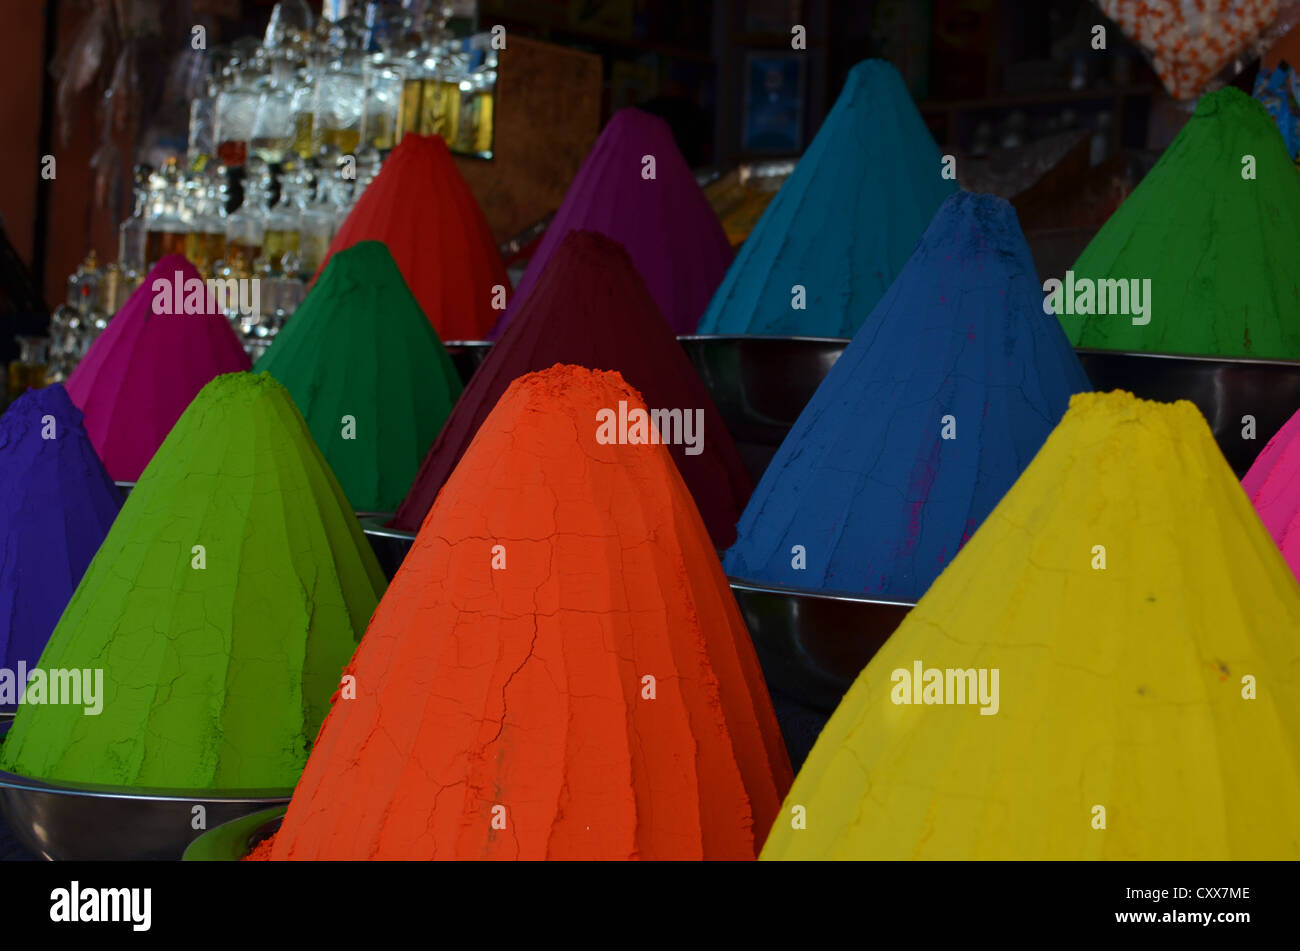 colourful cones of paint for sale in an Indian market - Stock Image